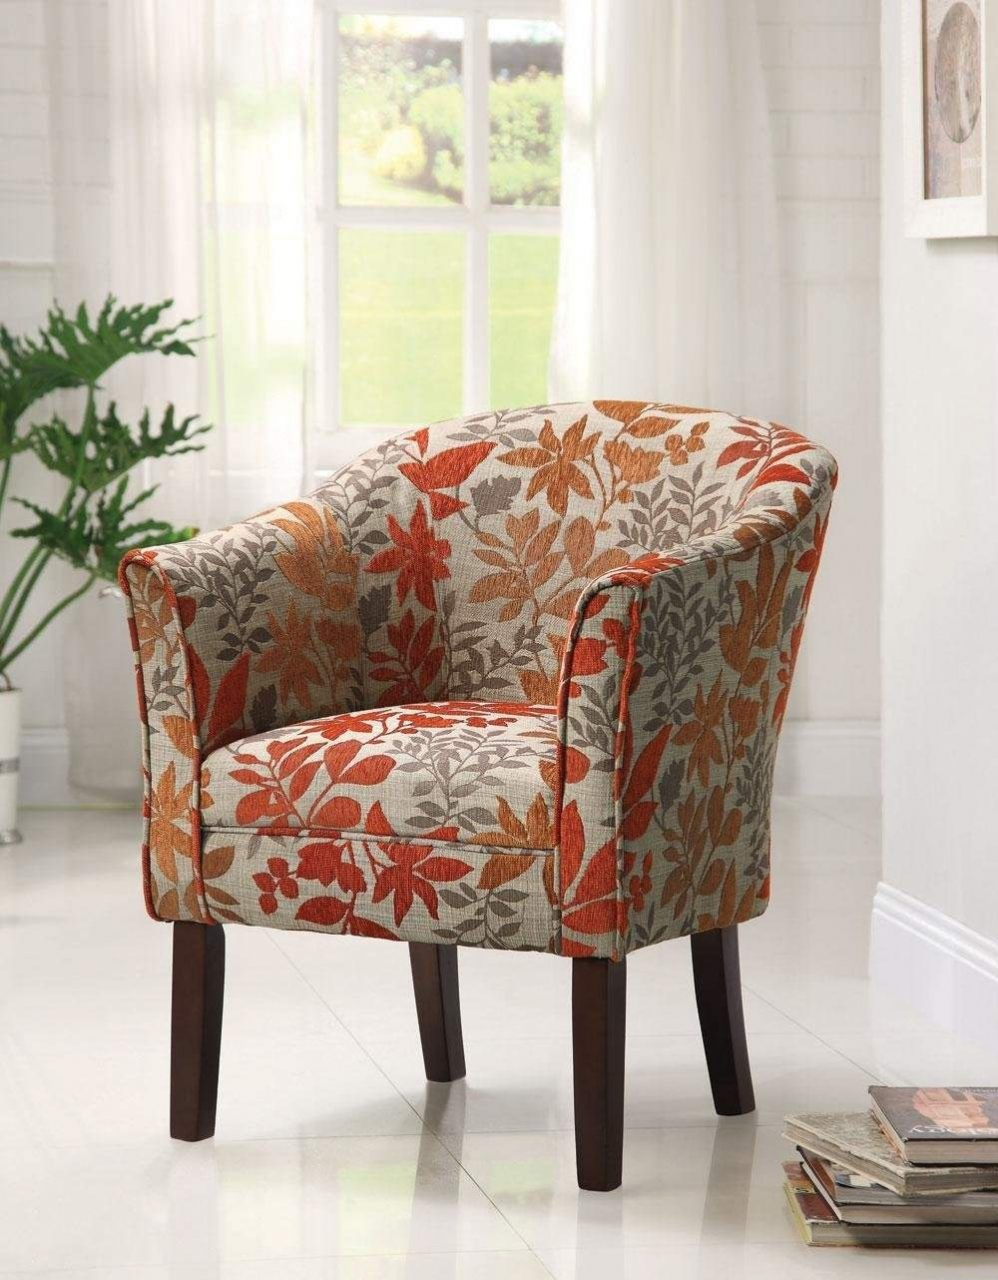 Red Accent Chairs For Living Room Upholstered Lovely Chair With Arms